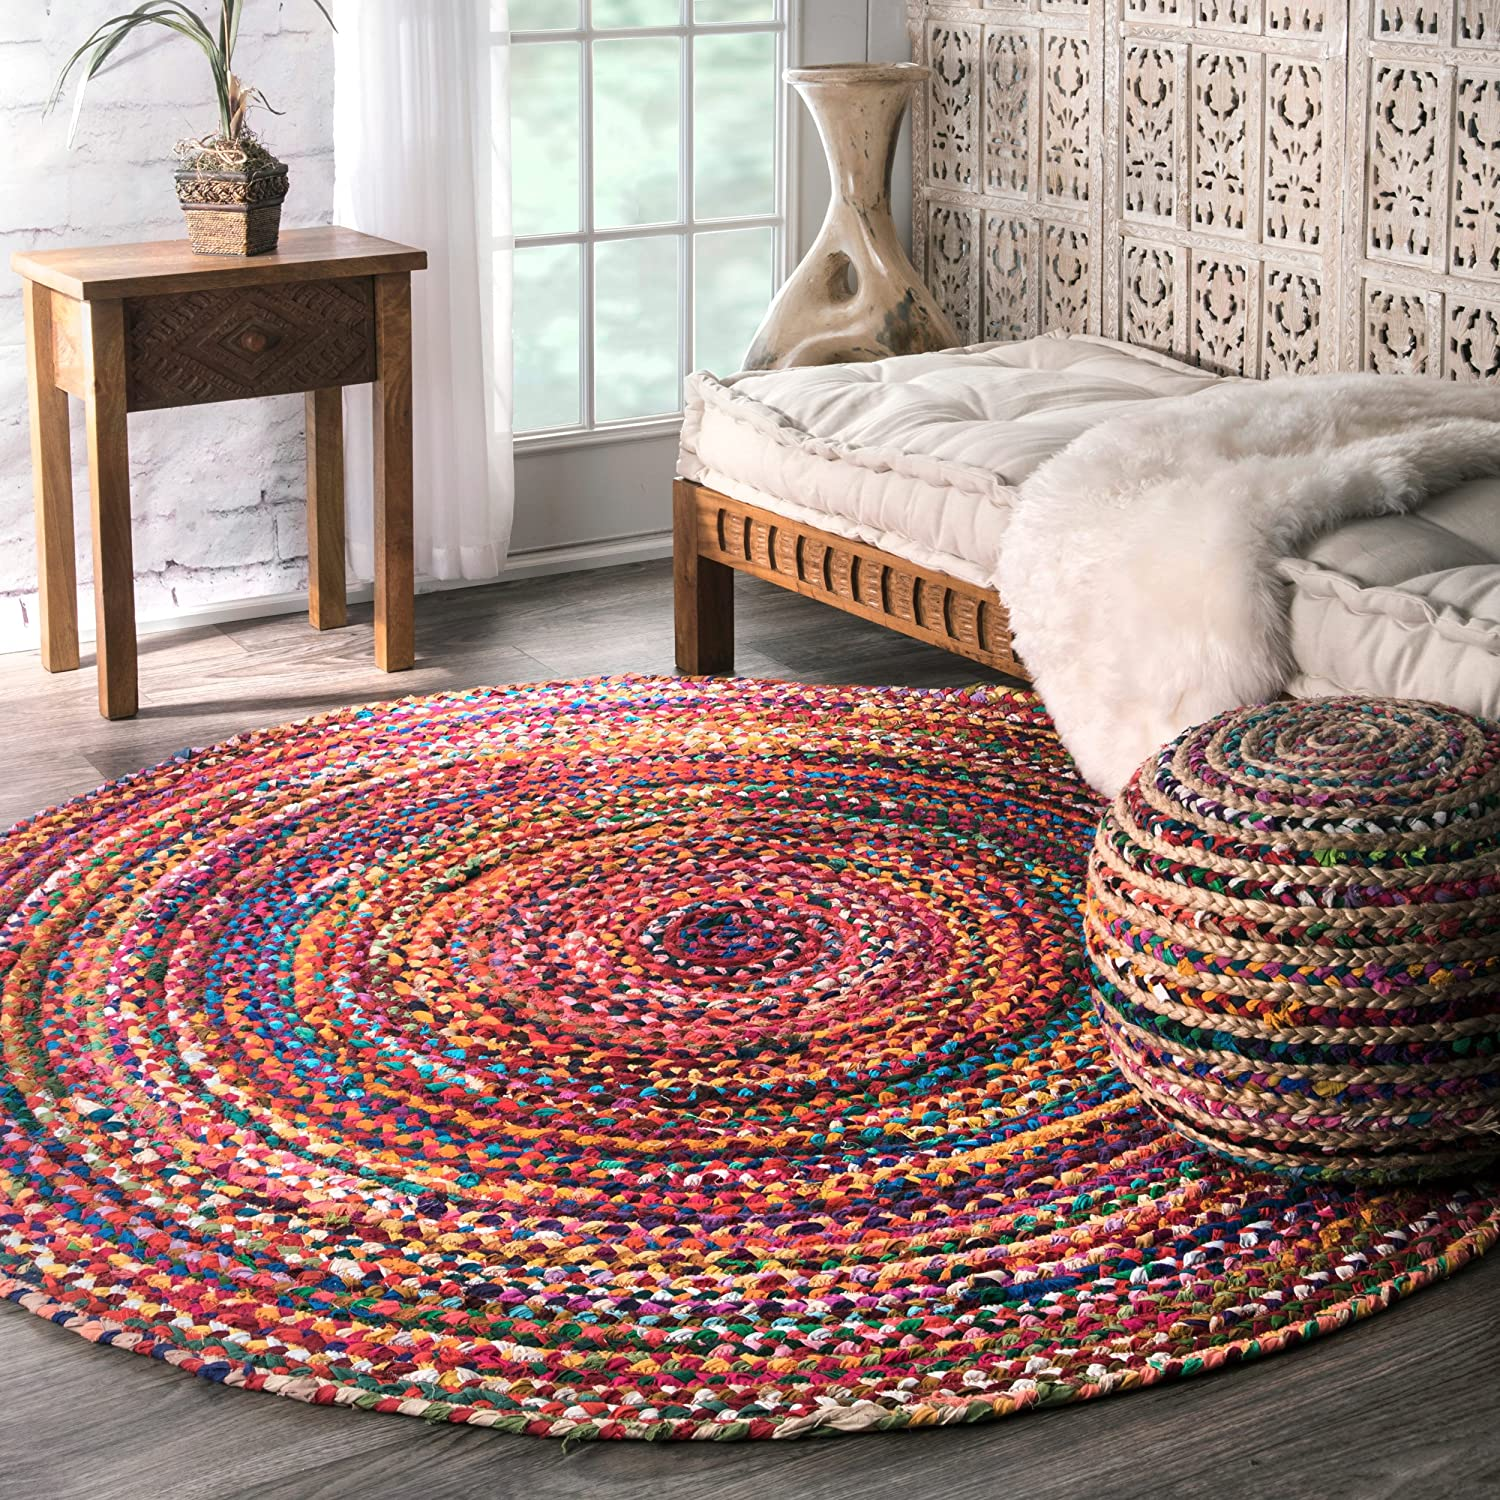 Amazon com nuloom 8 x 8 hand braided tammara round rug garden outdoor